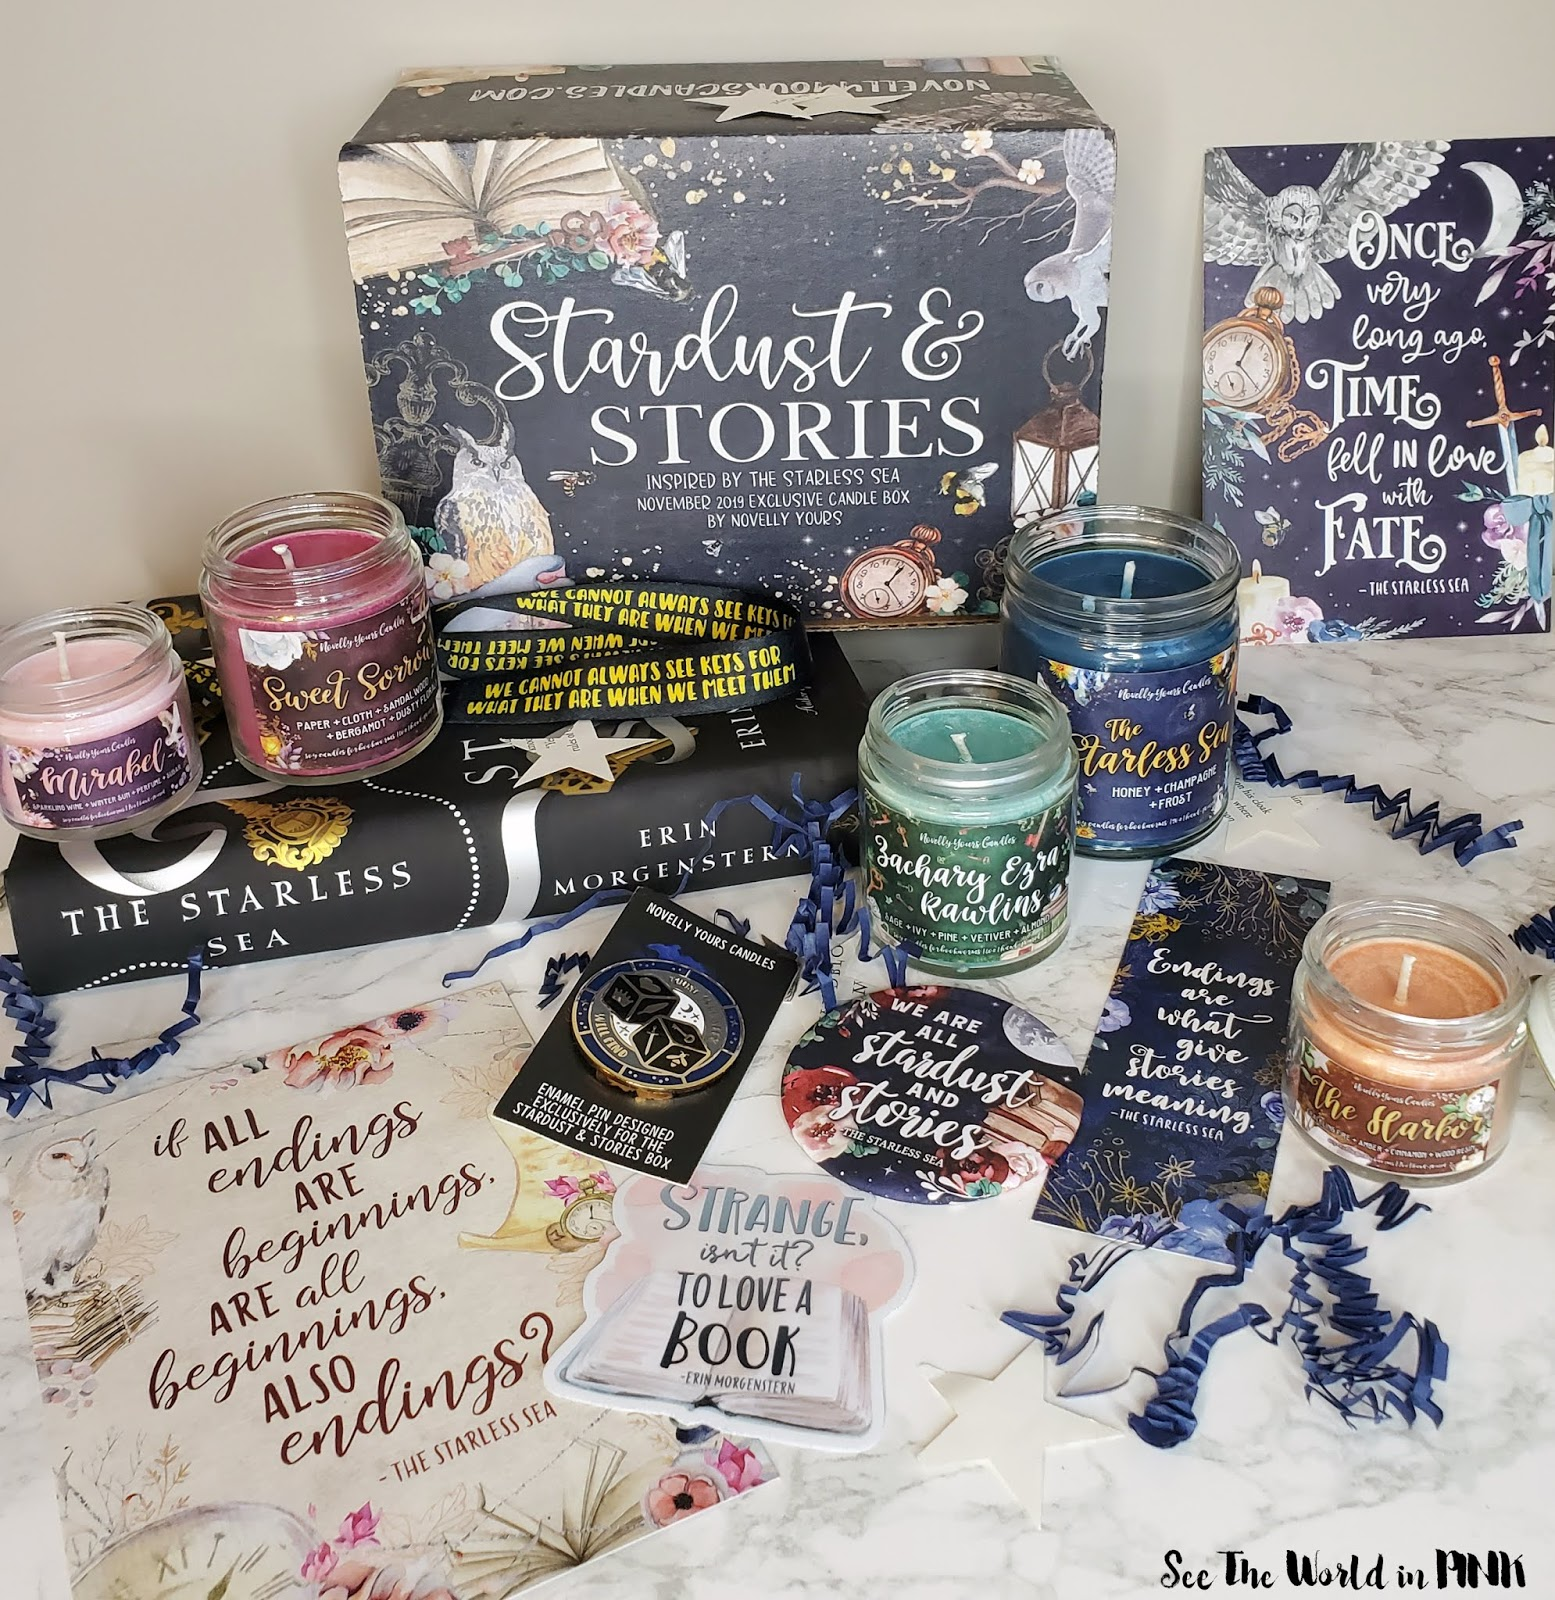 Novelly Yours Exclusive Candle Box 2019年11月星尘& Stories